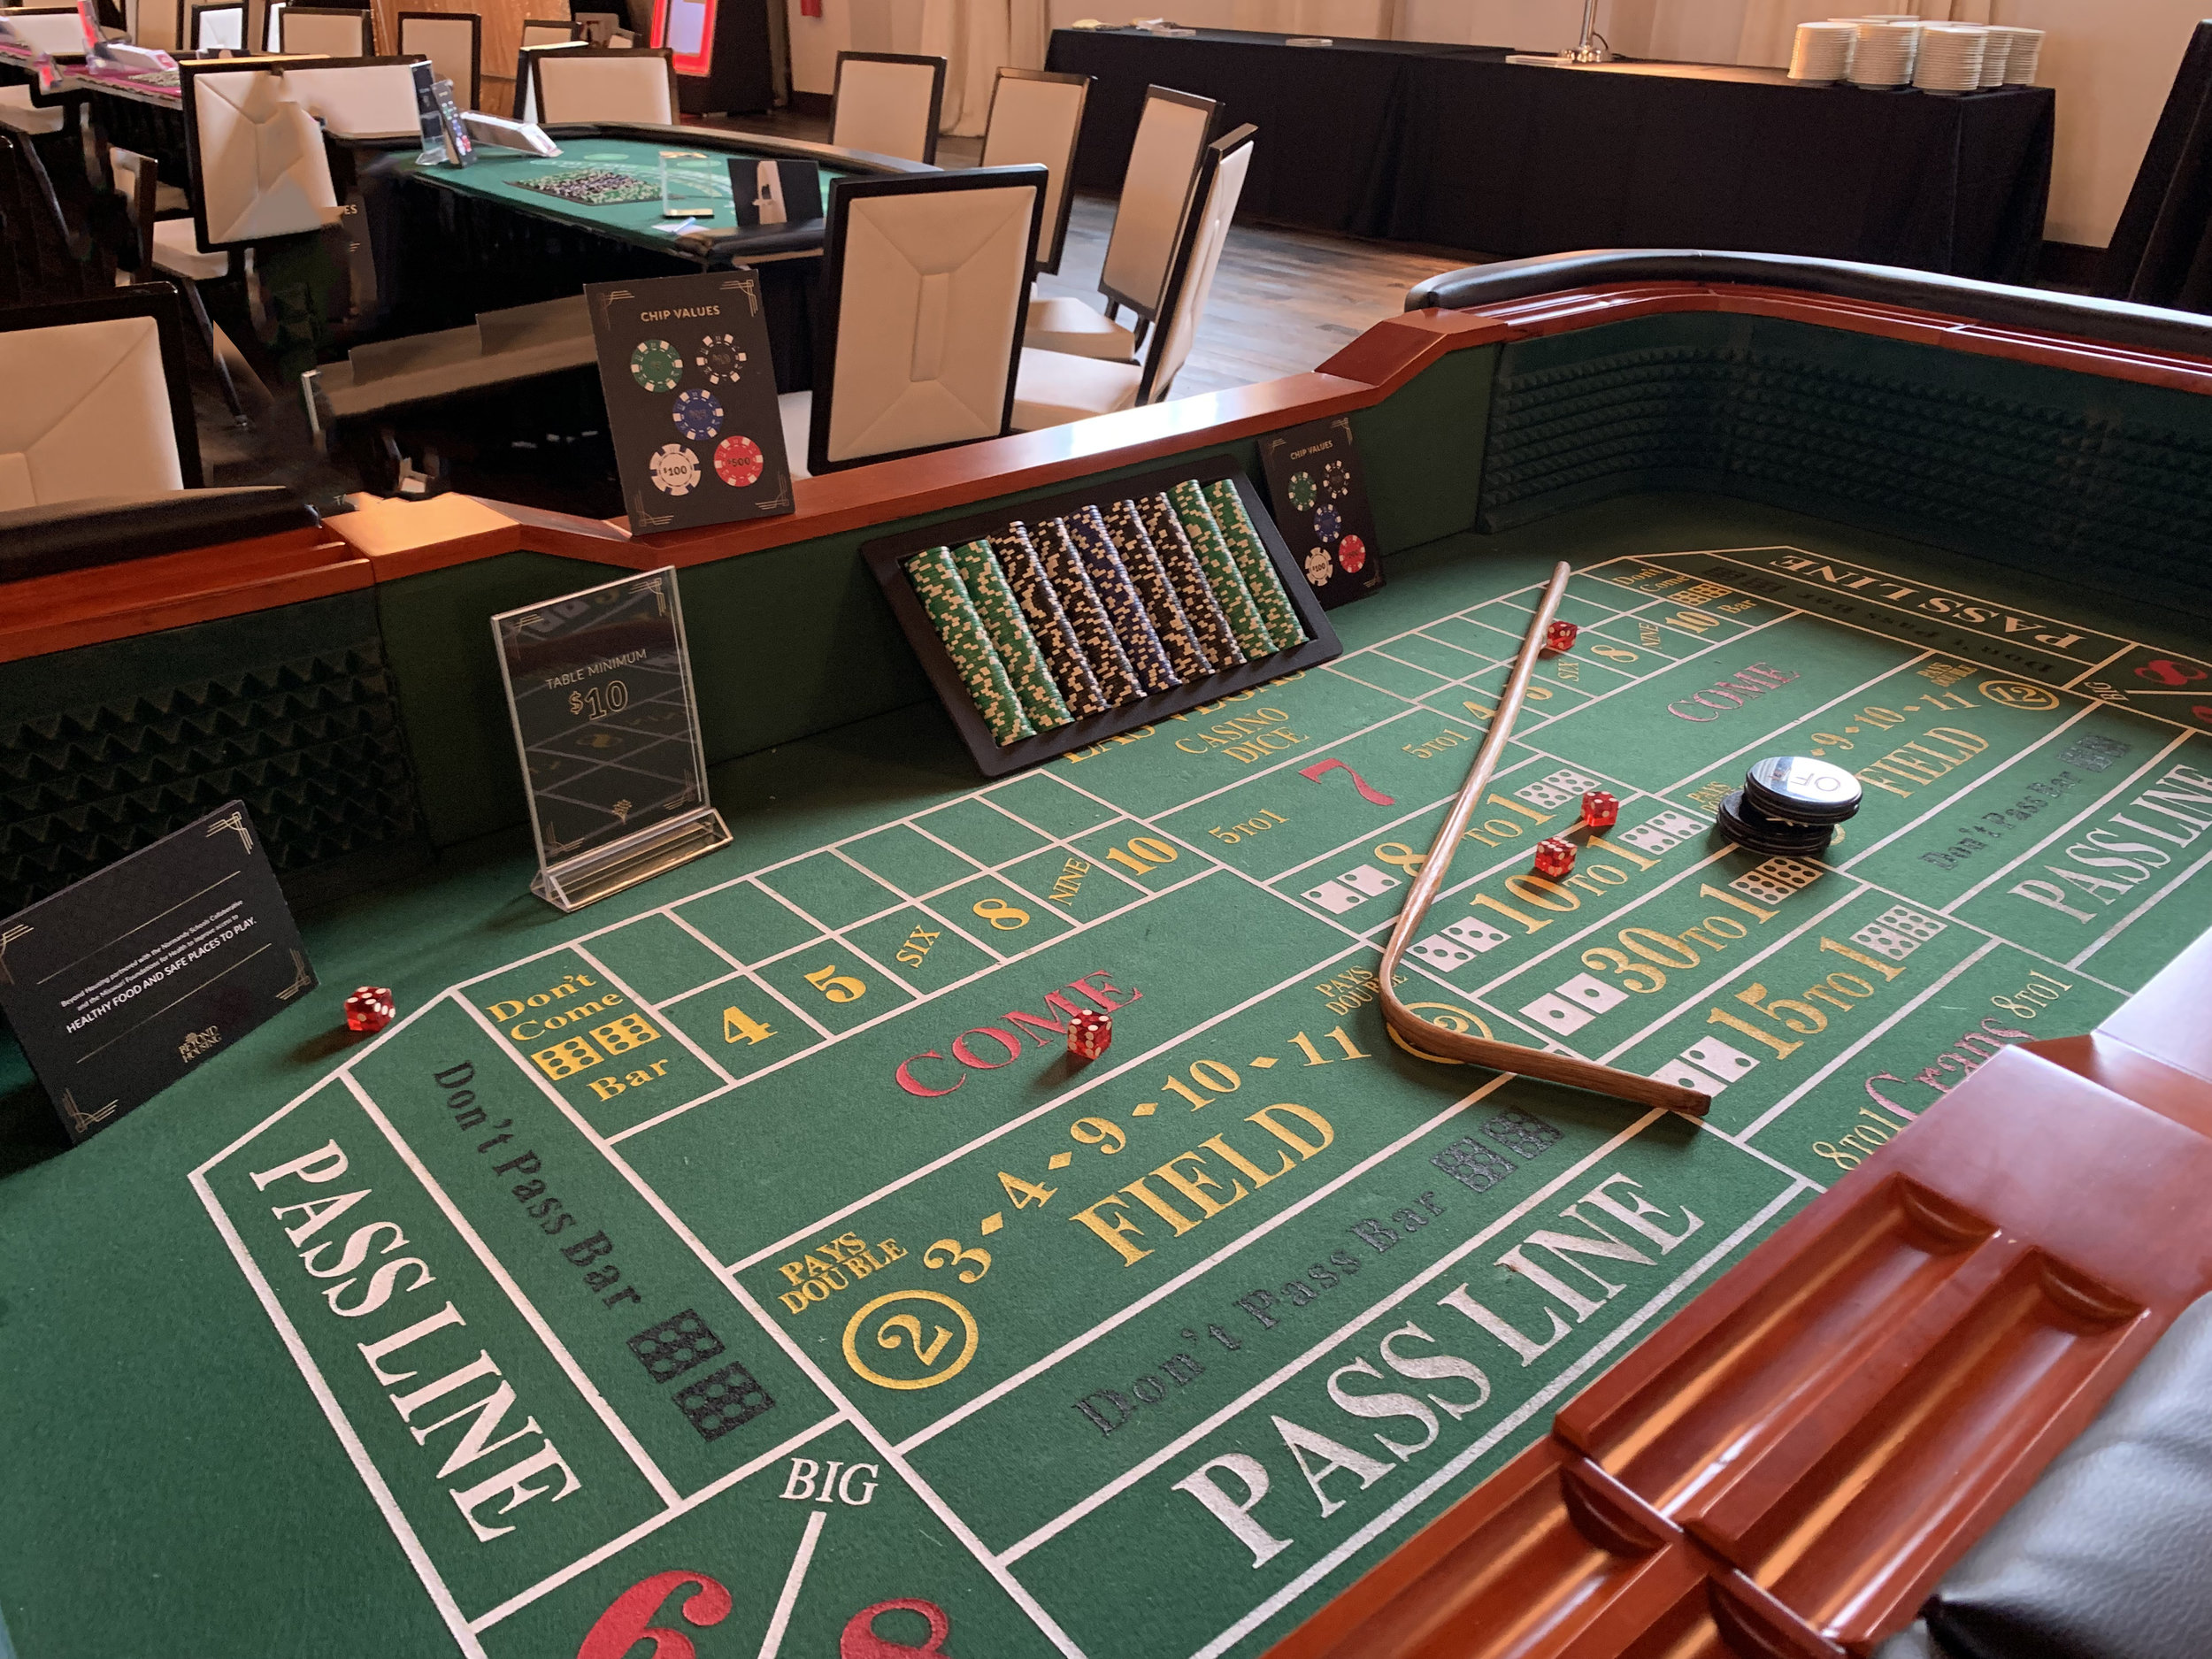 CRAPS: Craps can accommodate 10-15 guests at once and it is one of our most exciting games. While craps is a bit more complicated than our other offerings, our dealers are happy to teach anyone how to play.